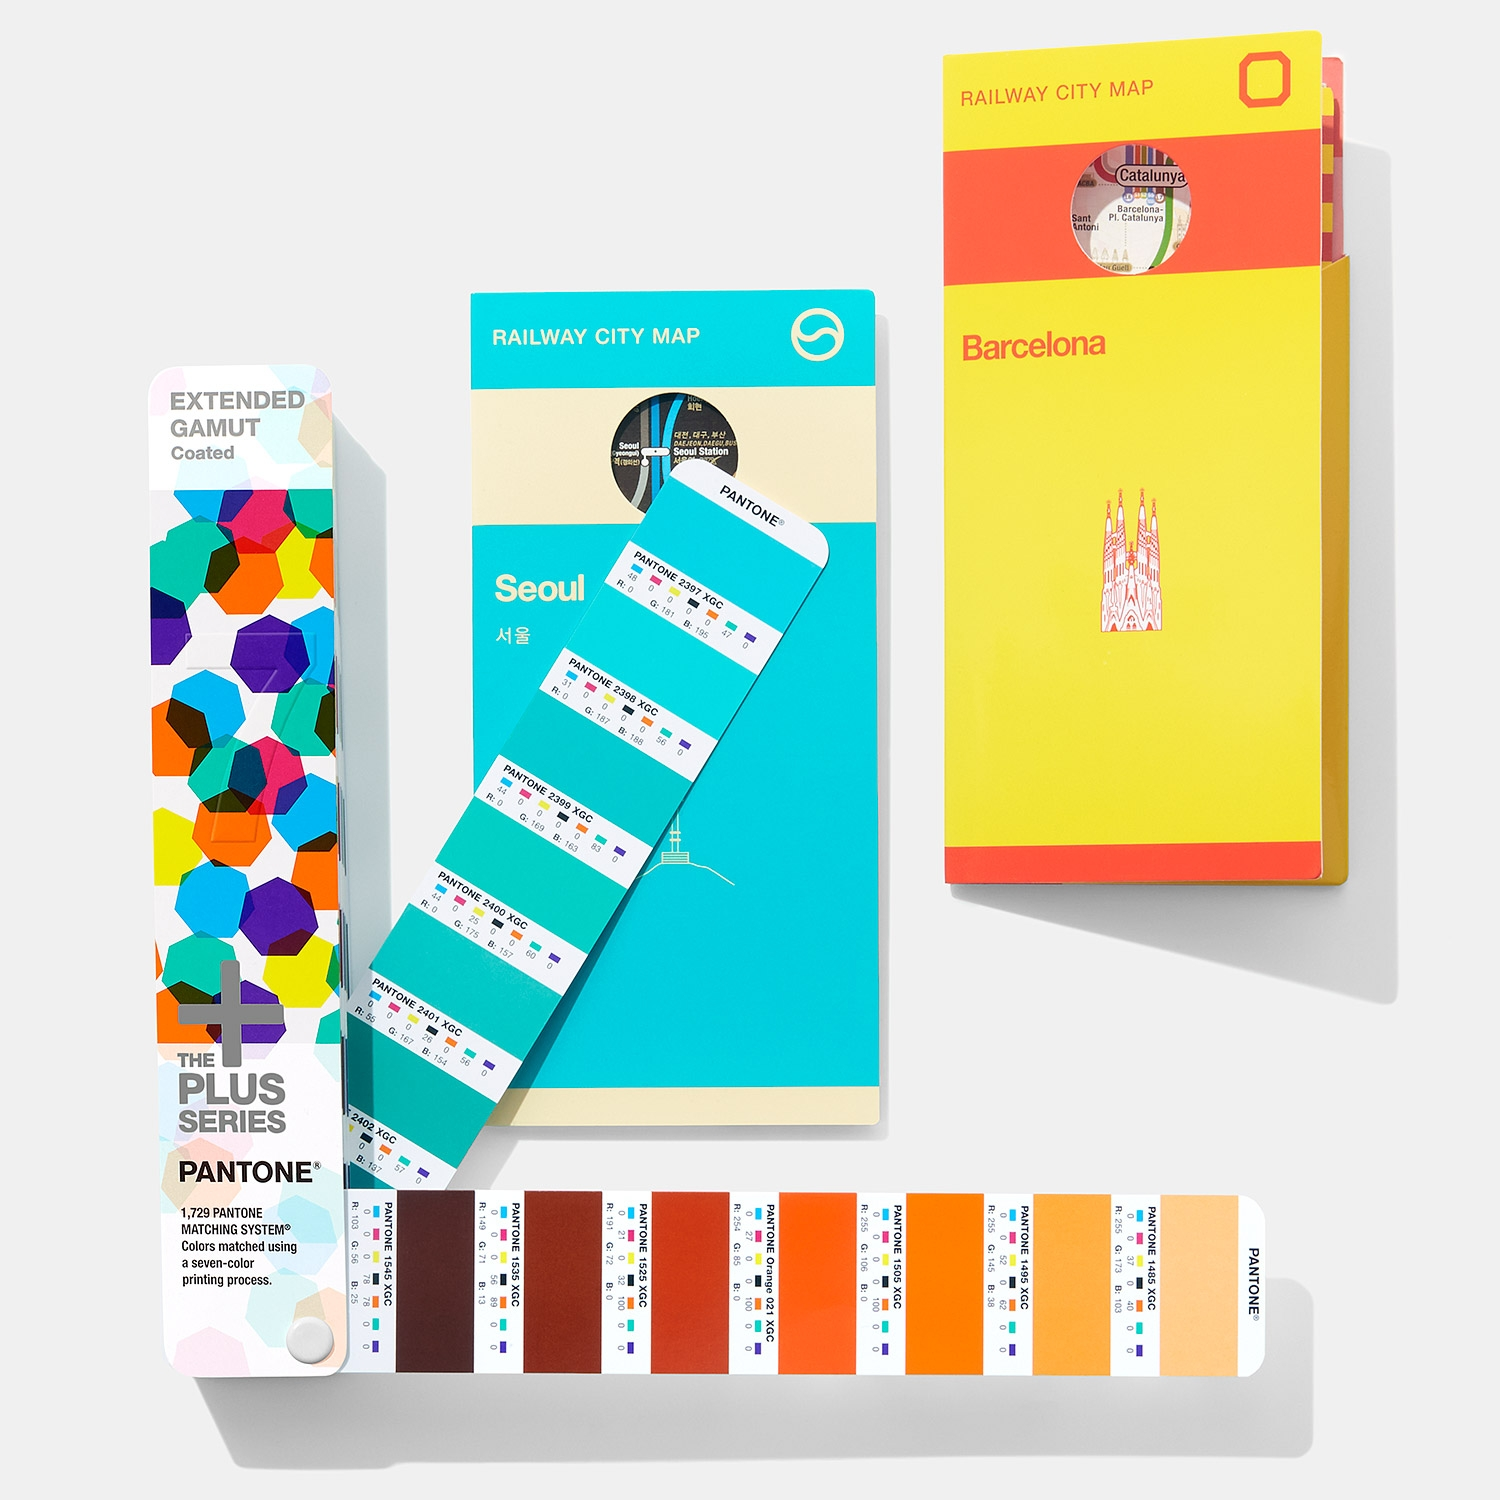 Pantone Extended Gamut Coated Guide - View 1